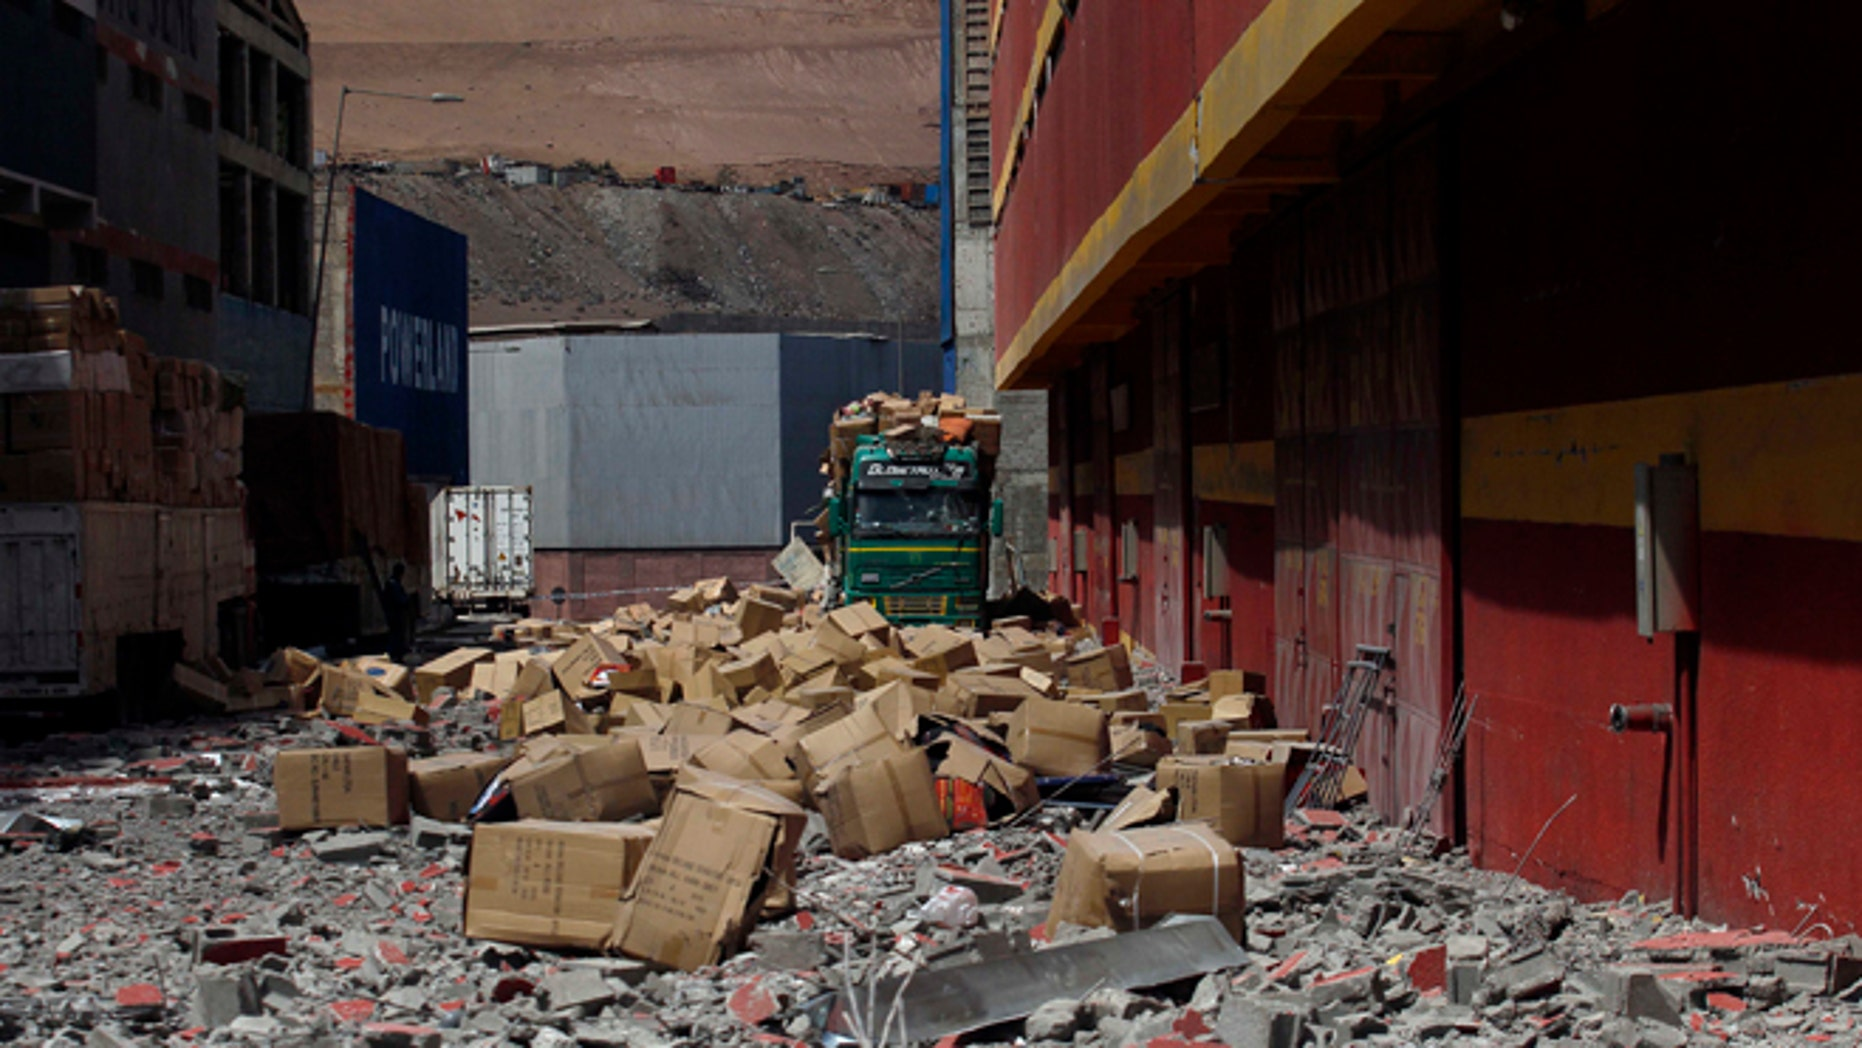 A truck remains covered by debris and boxes of fallen merchandise that fell from the earthquake ravaged Duty Free Zone of Iquique, in Iquique, Chile, Friday, April 4, 2014. Following a magnitude-8.2 earthquake early in the week, soldiers have kept a close watch on supermarkets and gas stations to prevent looting as many people continued to line up on Friday for gasoline, water and food. The city remained largely peaceful and no new major damage or casualties were reported from the continuing aftershocks that have rattled the sleep-deprived citizens of Chile's north. (AP Photo/Luis Hidalgo)